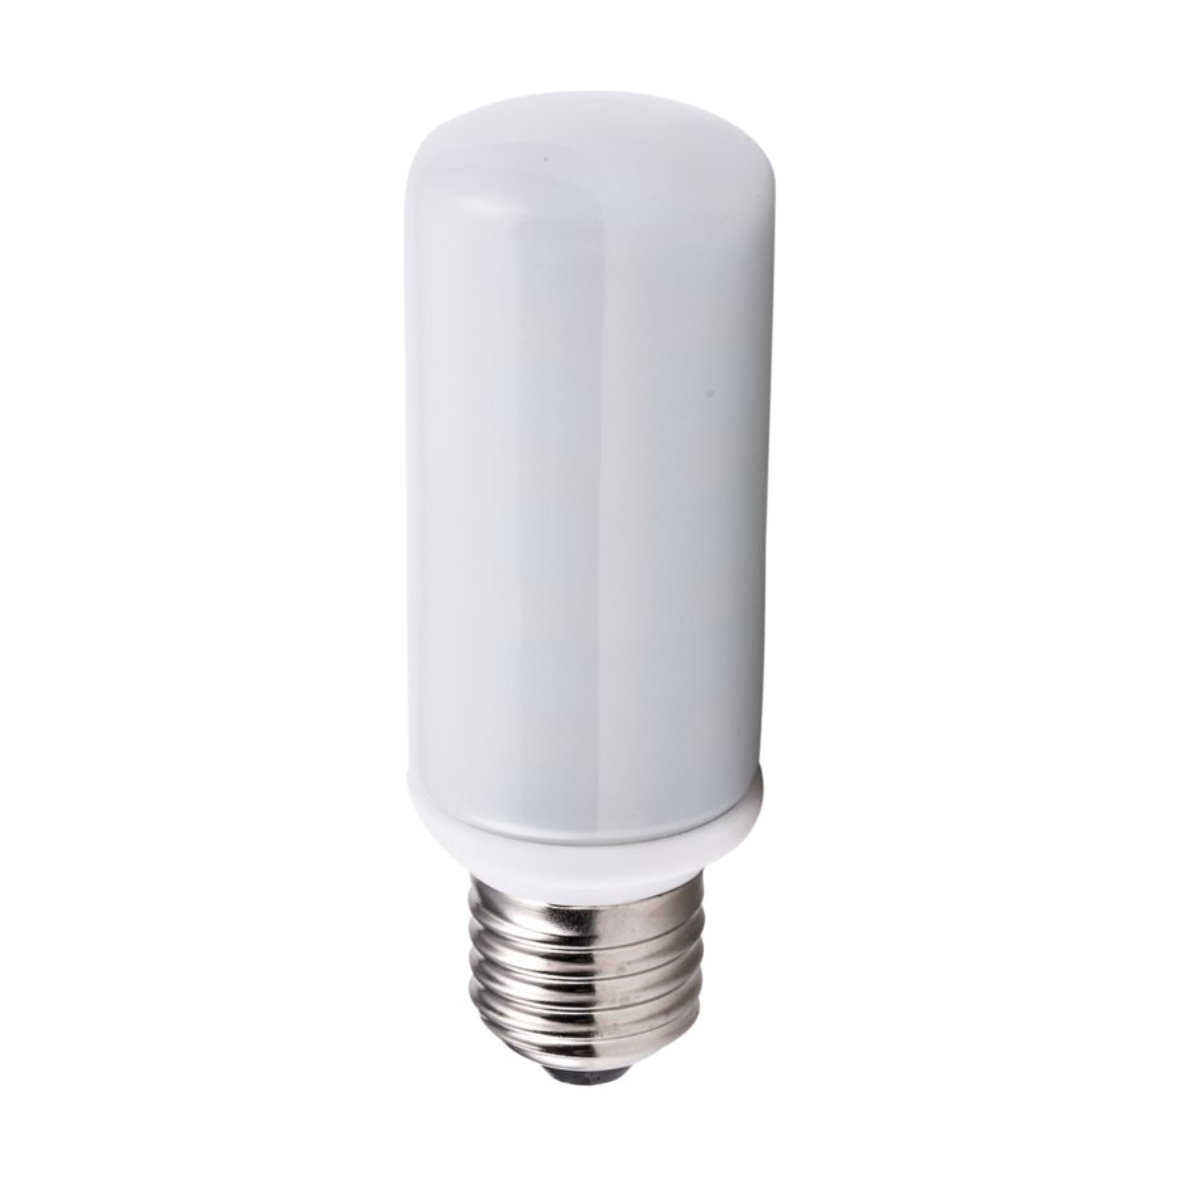 Led Birne E27 Warmweiss E27 Led Dimmbar Led Fadenlampe E27 4w 390 Lumen Dimmbar Philips